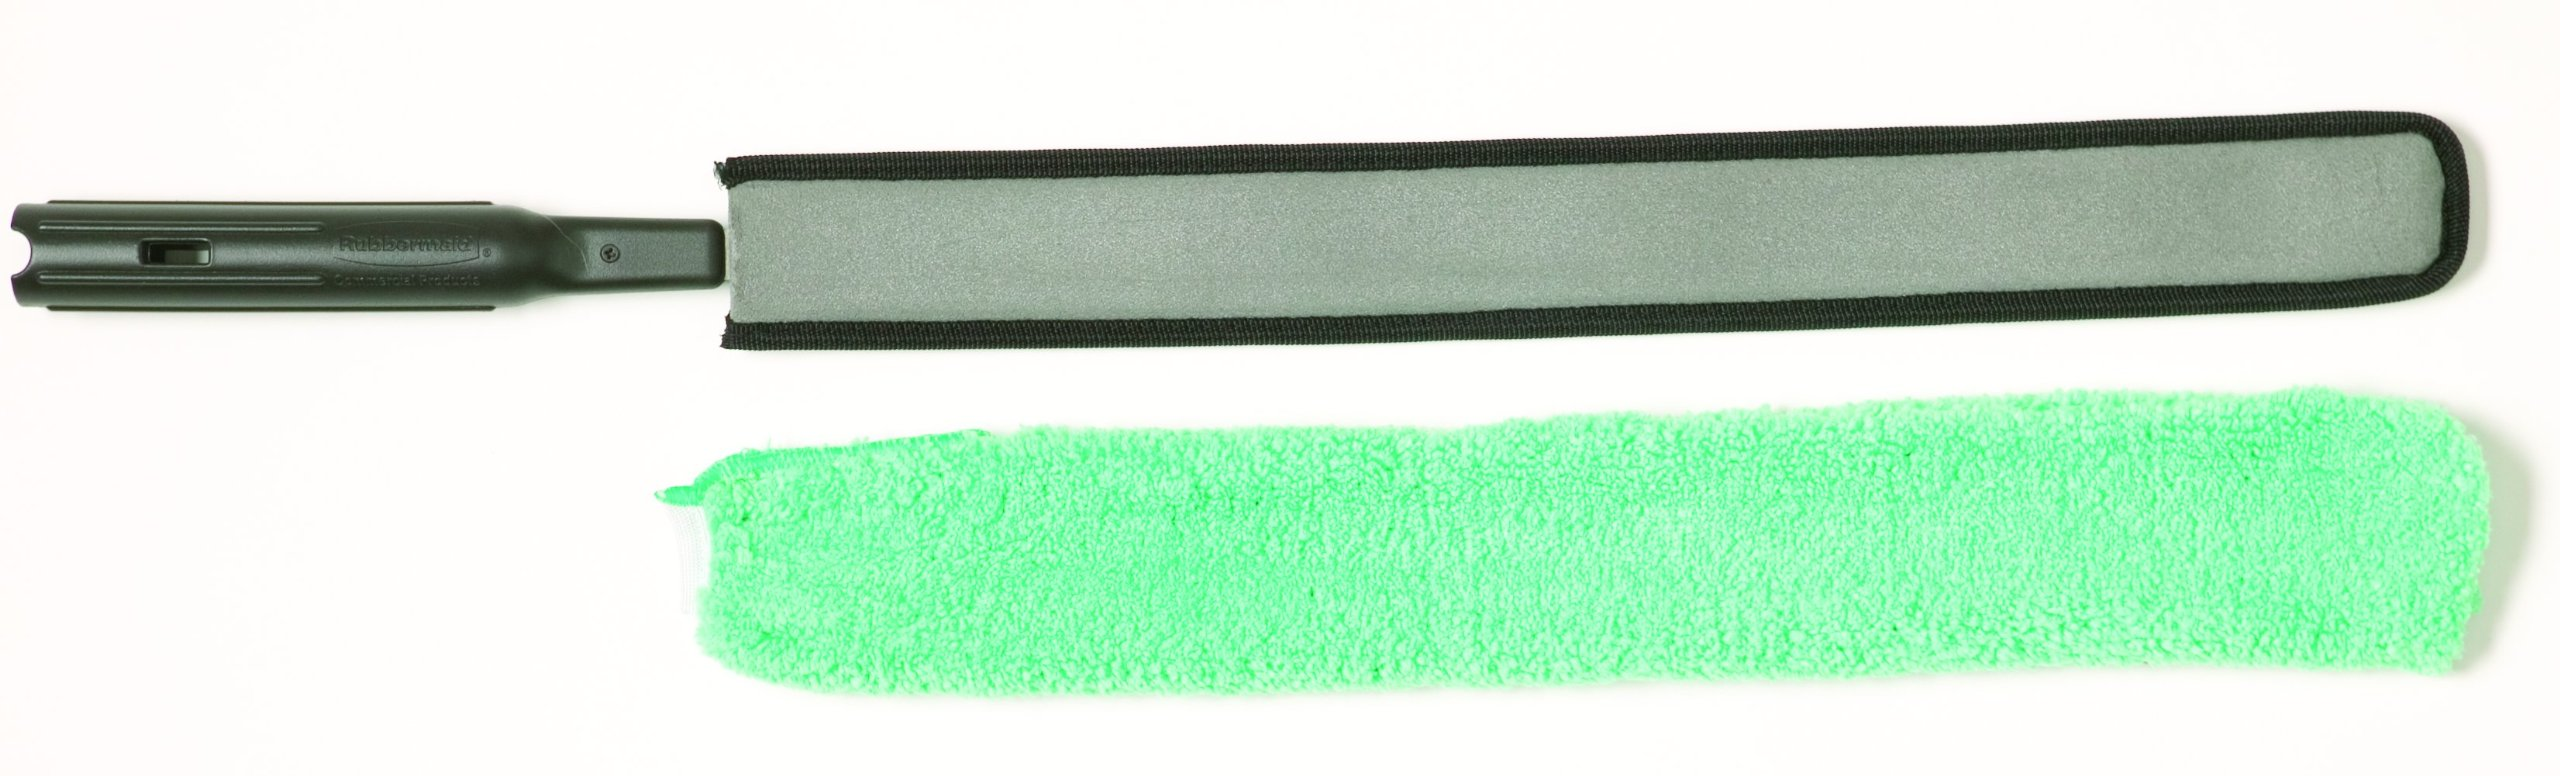 Rubbermaid Commercial FGQ85200WH00 Executive Series HYGEN High-Performance Flexible Microfiber Duster and Frame, Green